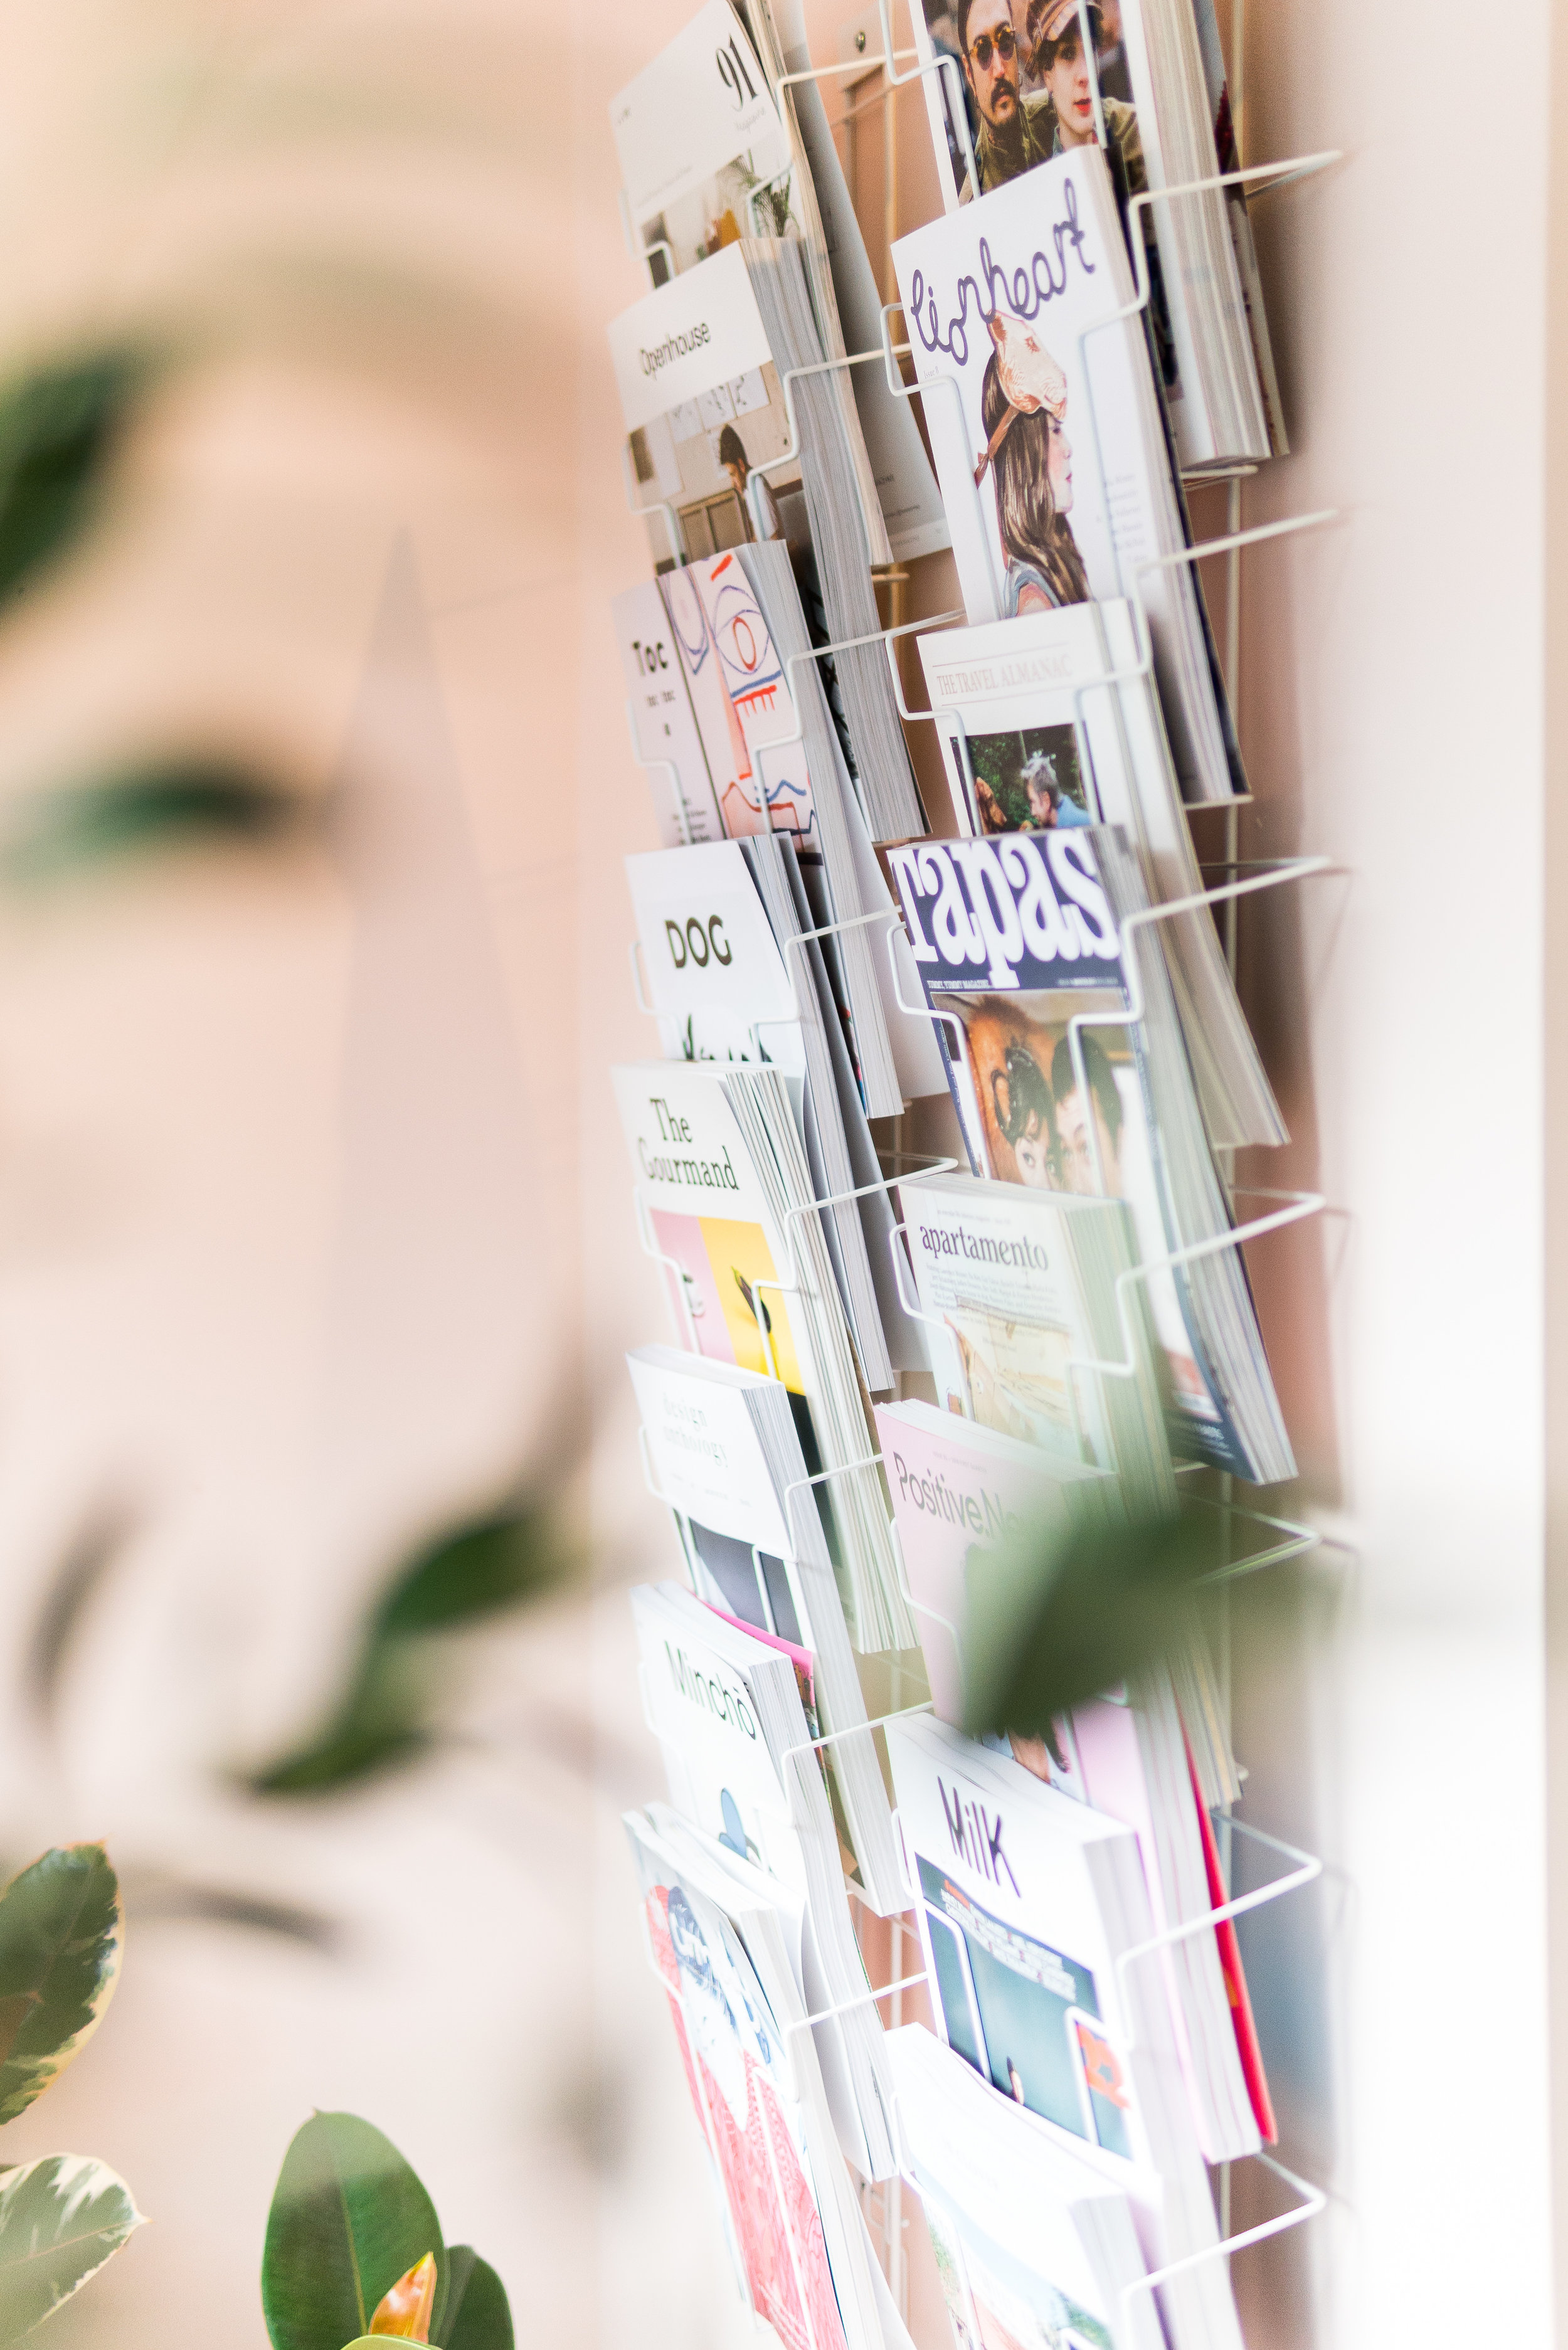 independent magazines at Maud's House lifestyle store